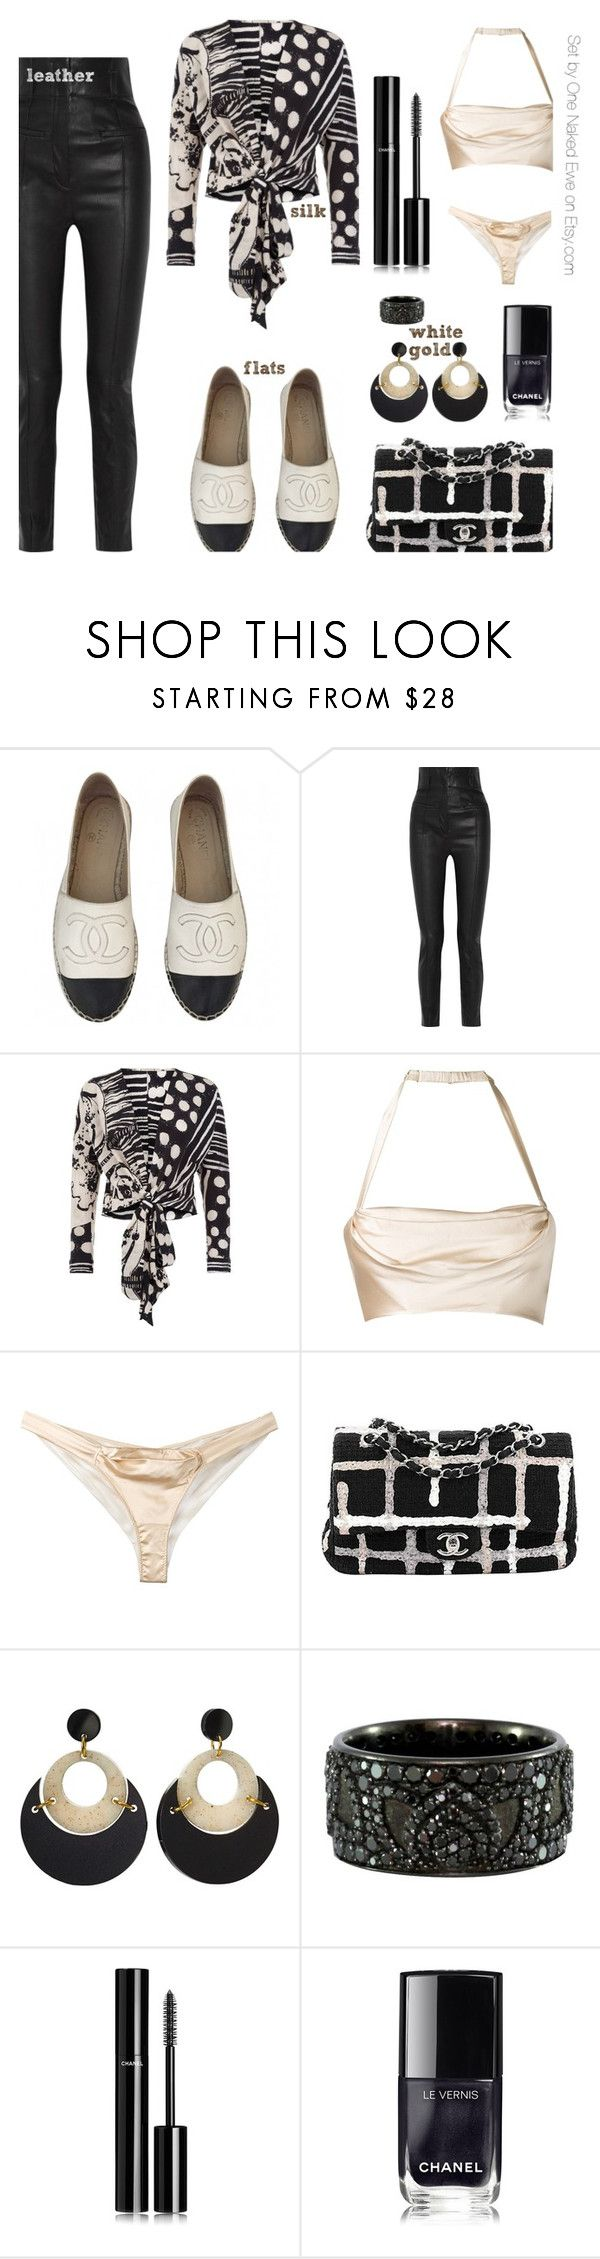 """Form, function, and fabric"" by onenakedewe ❤ liked on Polyvore featuring Chanel, Haider Ackermann, Bianca Elgar, Dolci Follie, Toolally, Luca Jouel and flats"